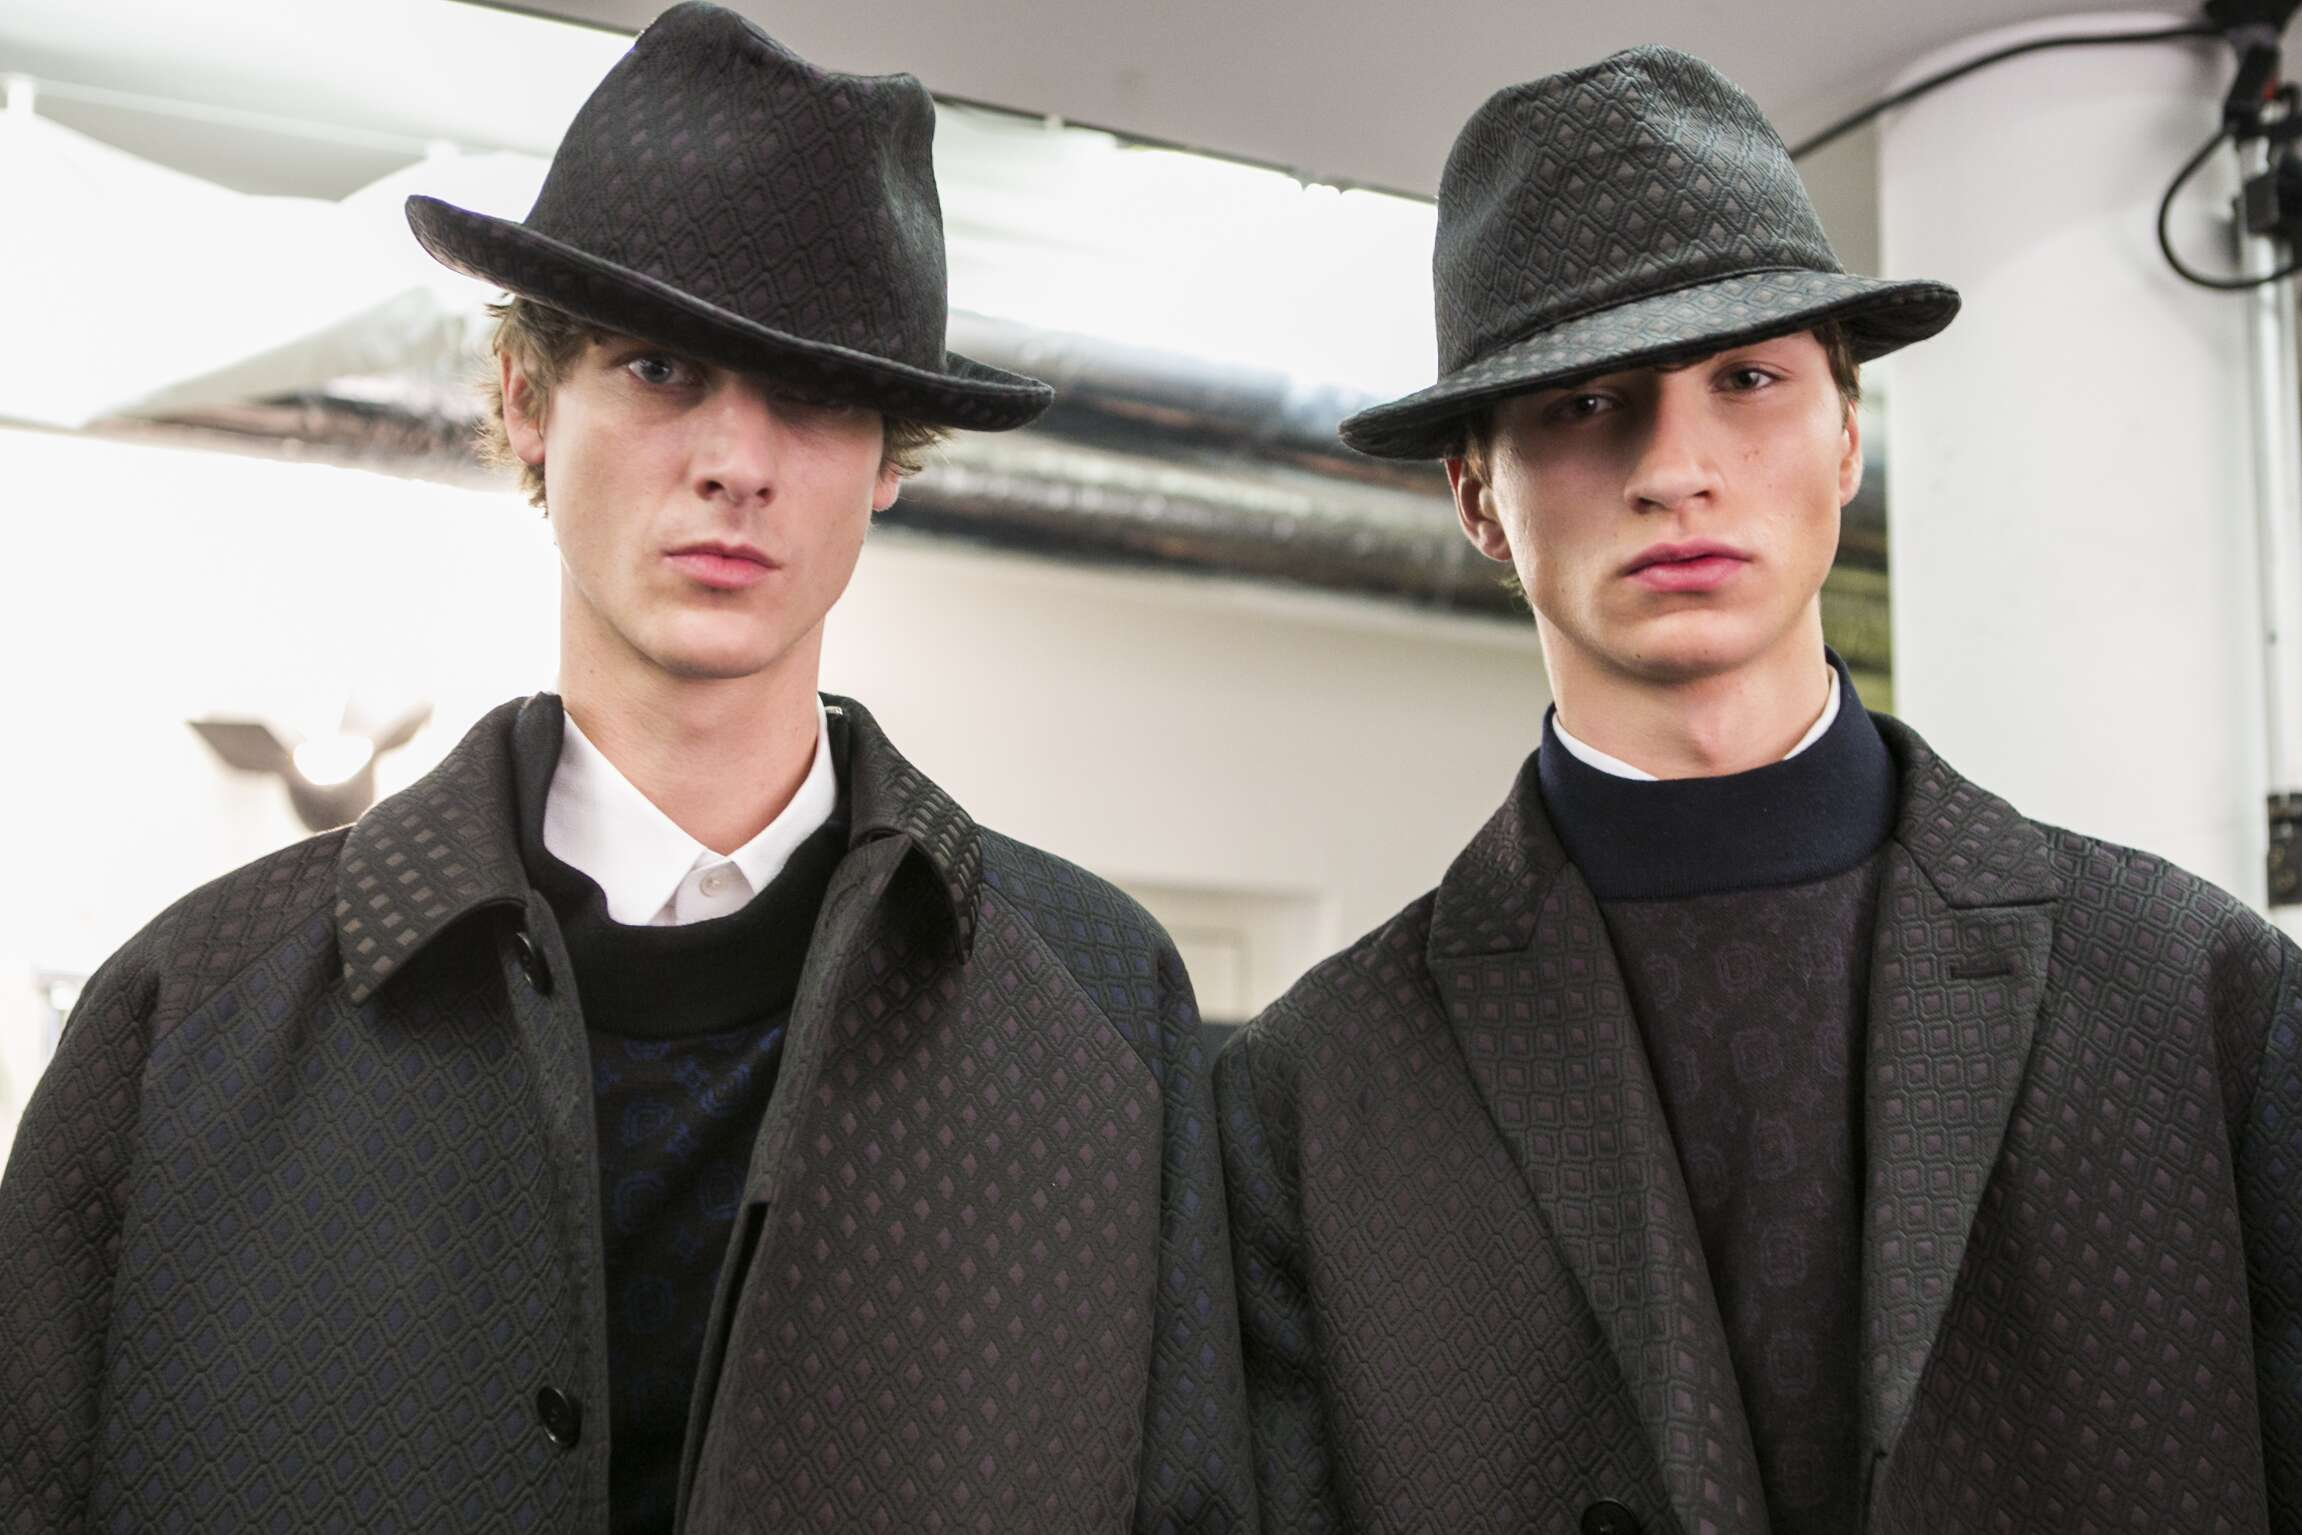 Fall Winter Models Backstage Ermenegildo Zegna Couture